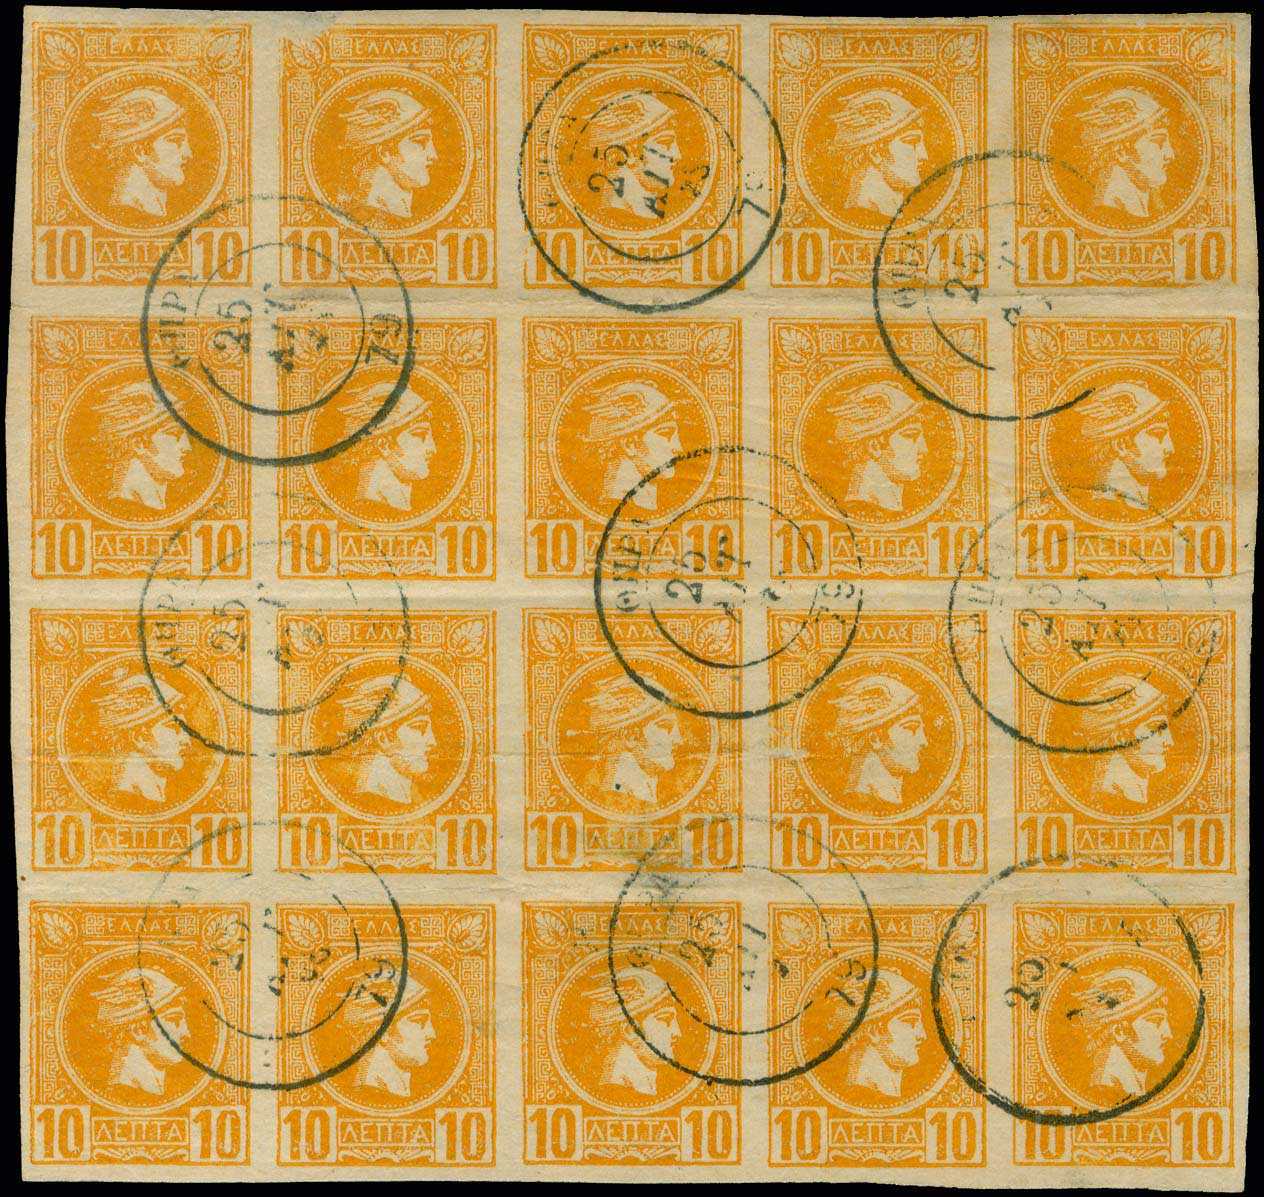 Lot 282 - -  SMALL HERMES HEAD athens issues -  A. Karamitsos Public Auction 668 General Philatelic Auction